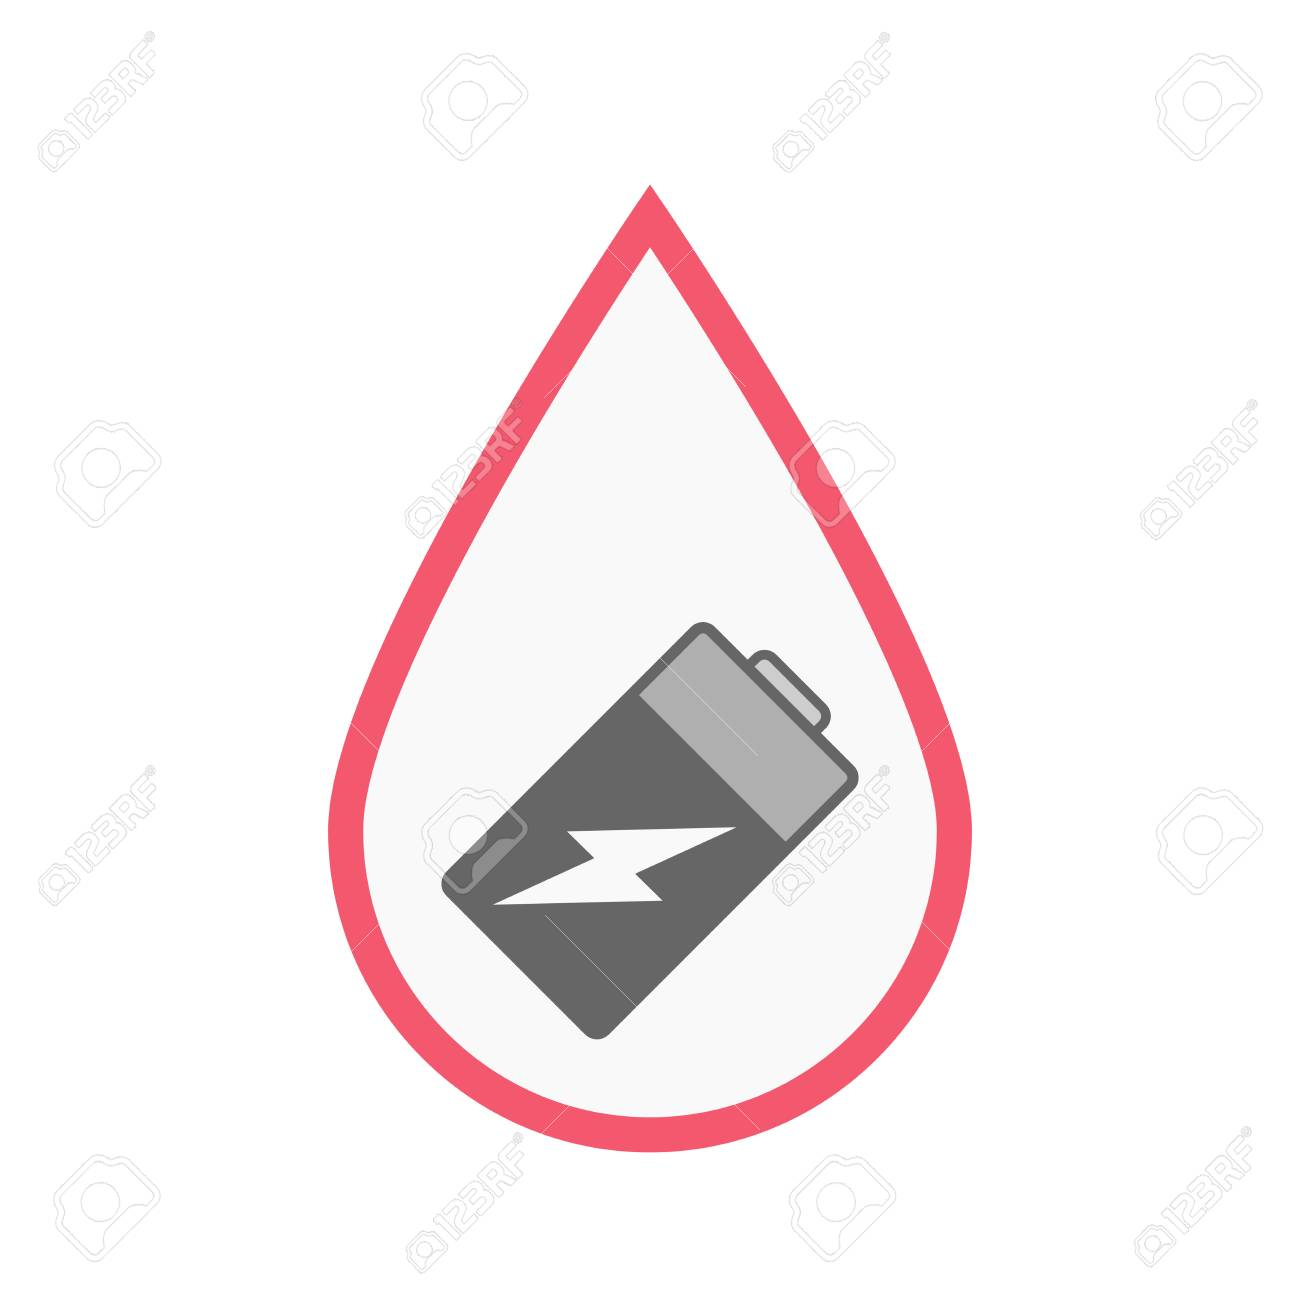 Illustration Of An Isolated Line Art Blood Drop With A Battery